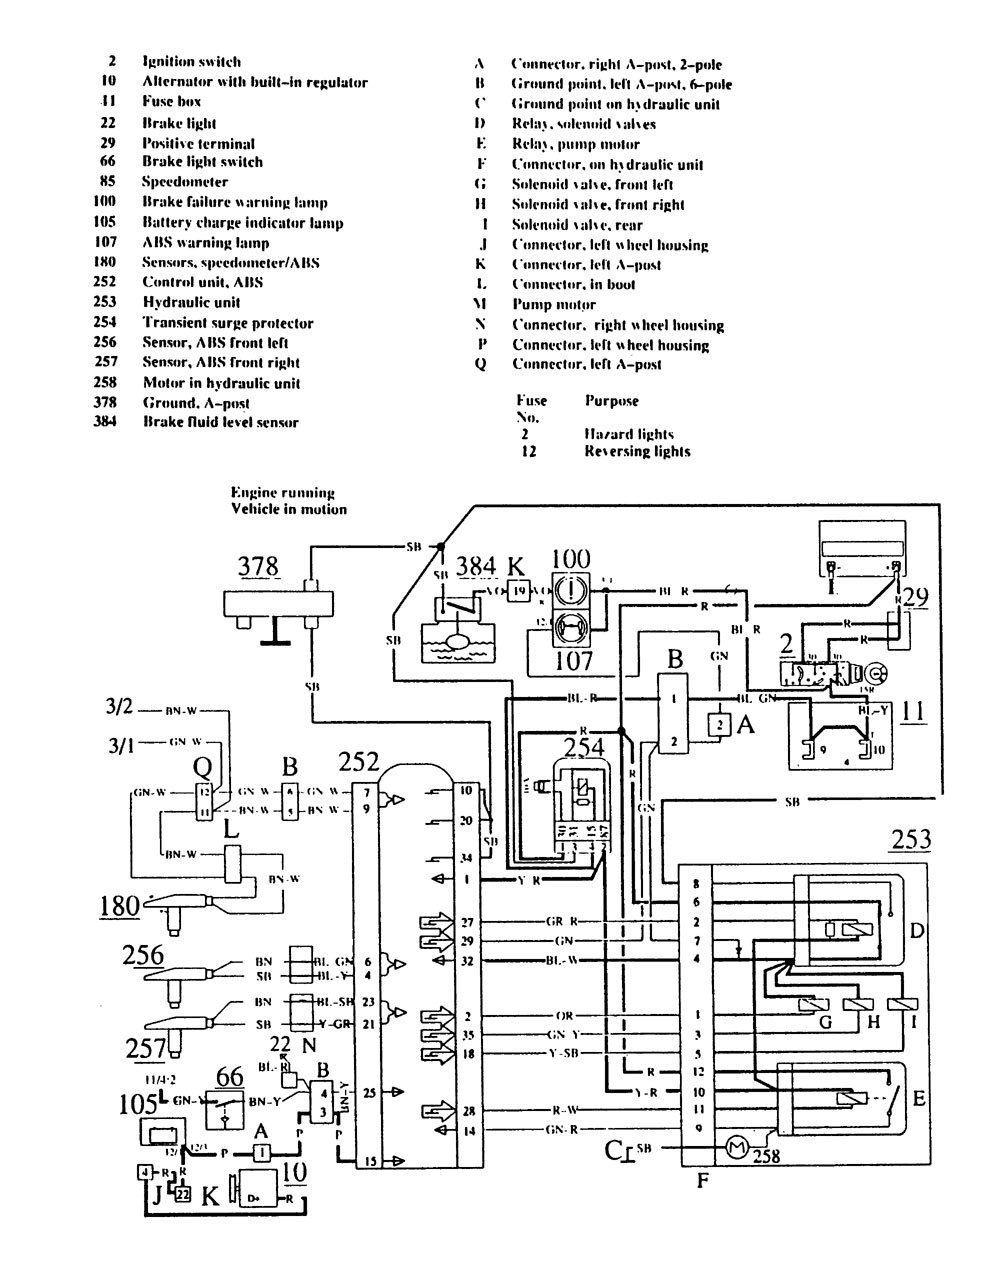 Volvo 240 Ignition Wiring House Wiring Diagram Symbols \u2022 Volvo Semi  Truck Wiring Diagram Volvo 240 Ignition Coil Wiring Diagram